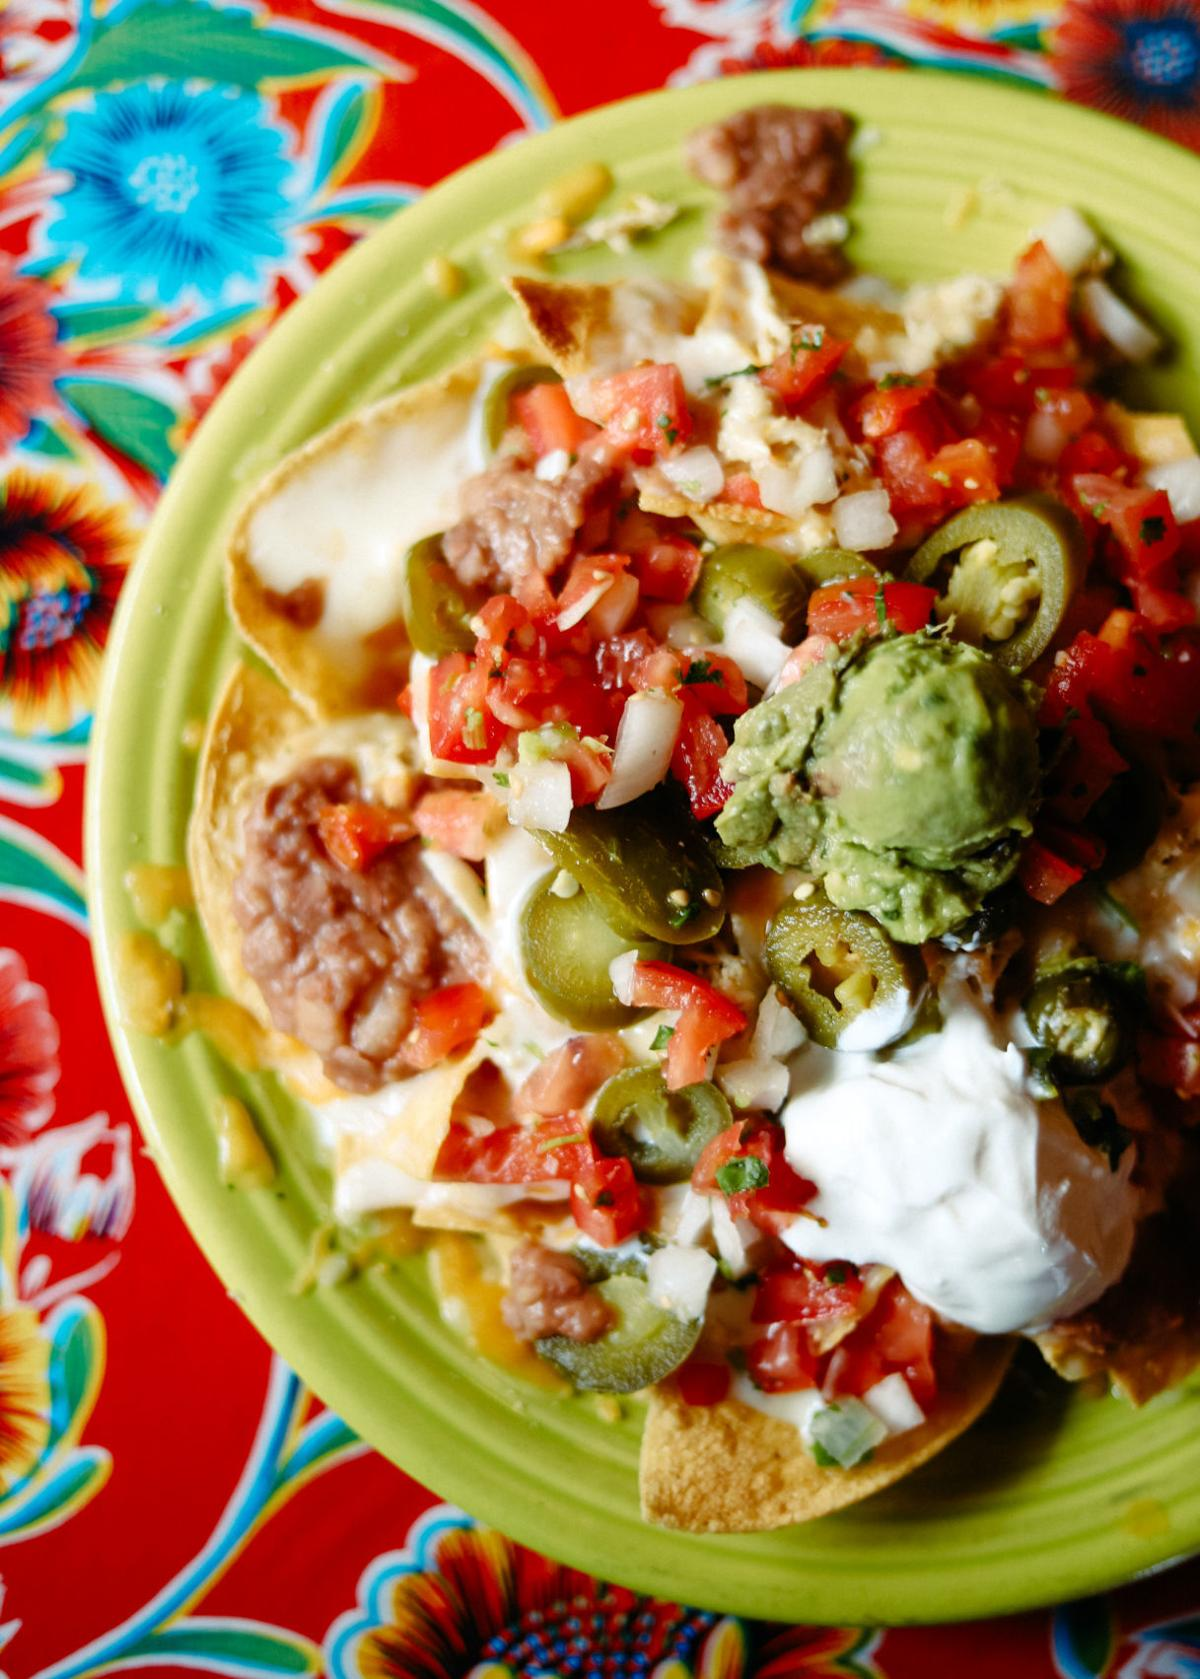 Tulsa's Tex-Mex Guide: The stories behind the classics and